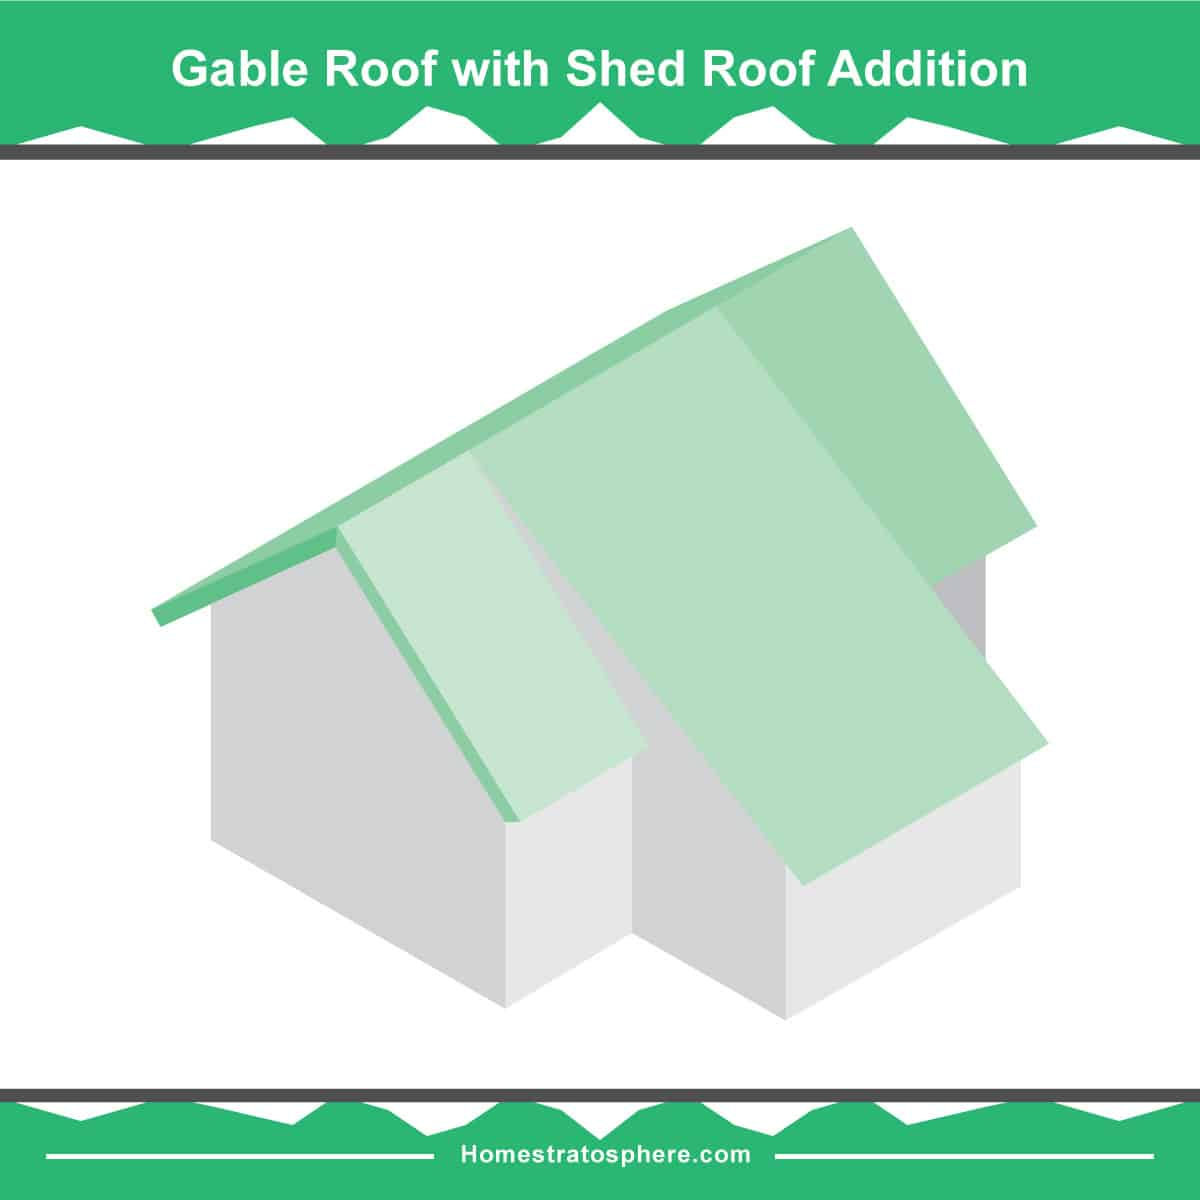 Gable roof with shed roof addition diagram